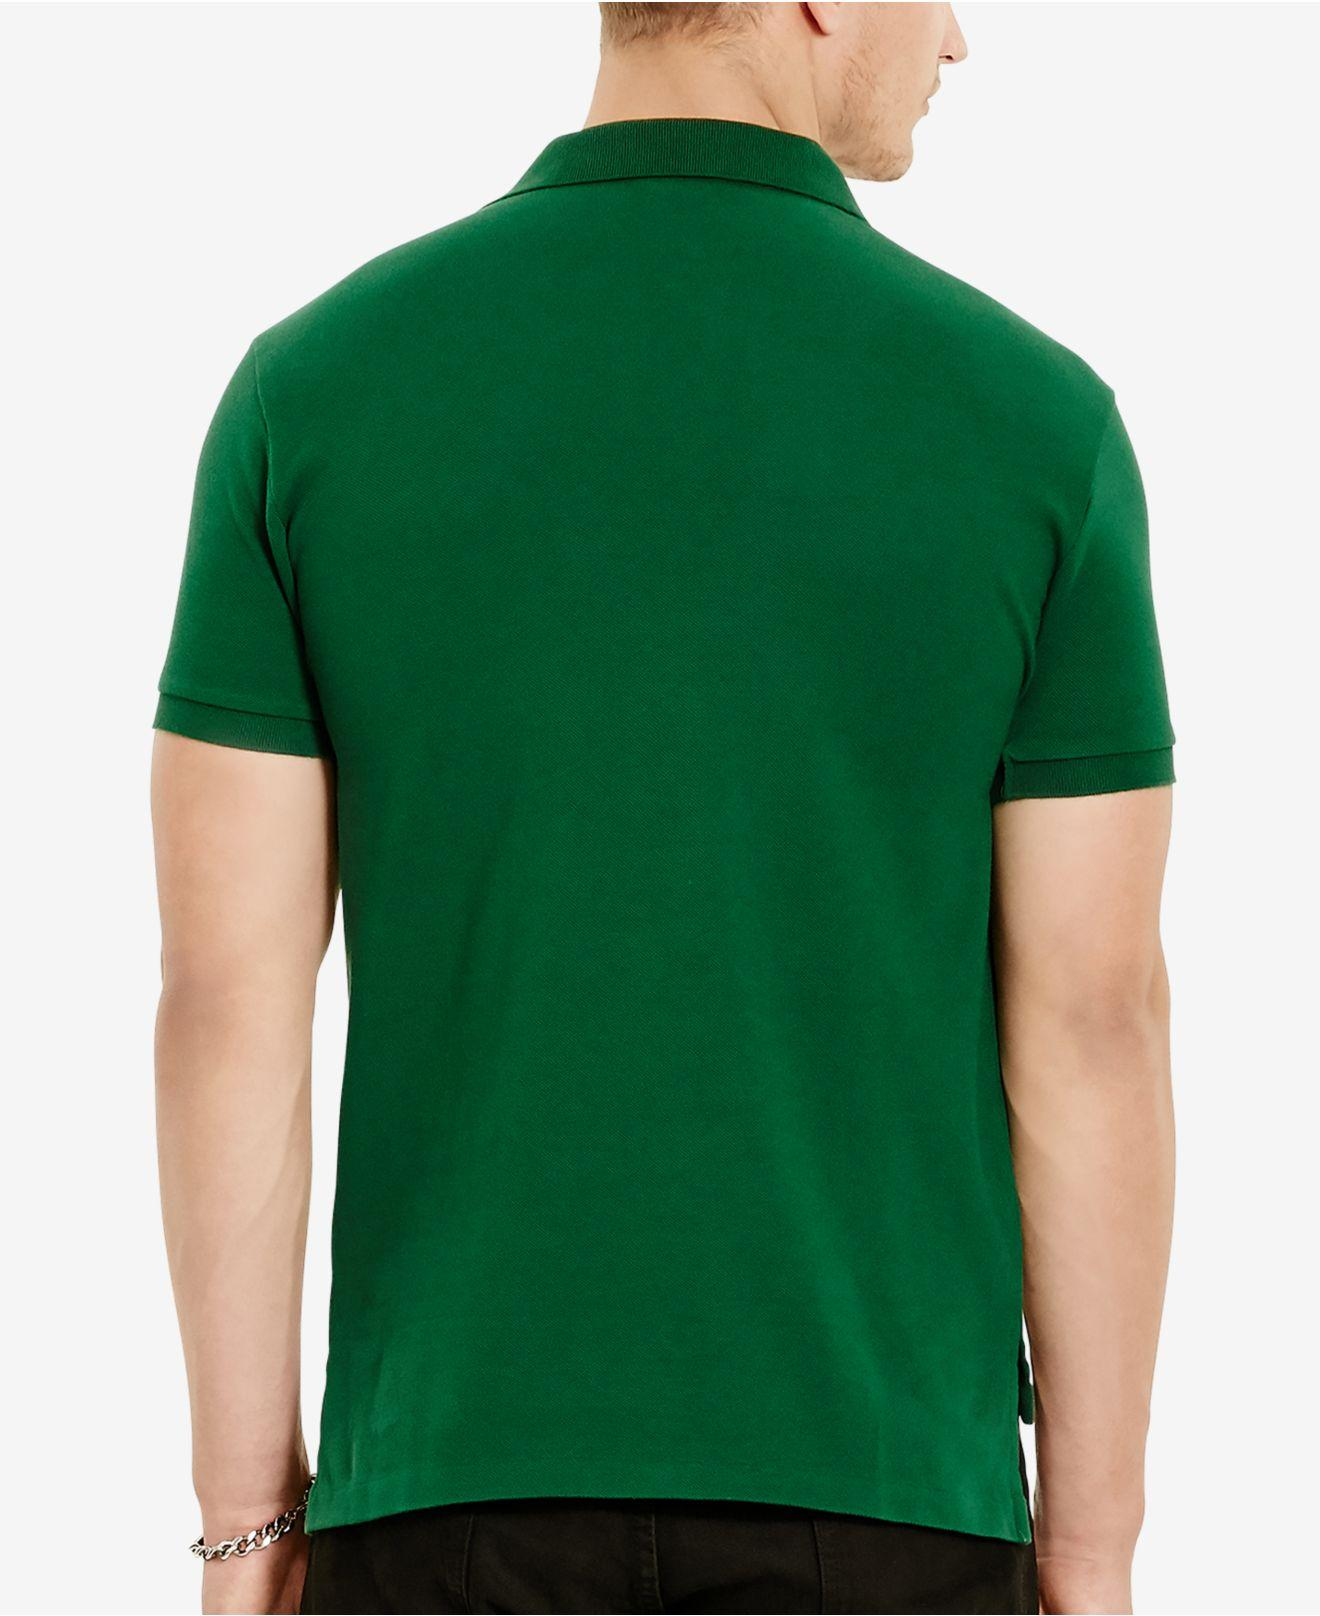 960d96e2 Lyst - Polo Ralph Lauren Classic-fit Mesh Polo in Green for Men